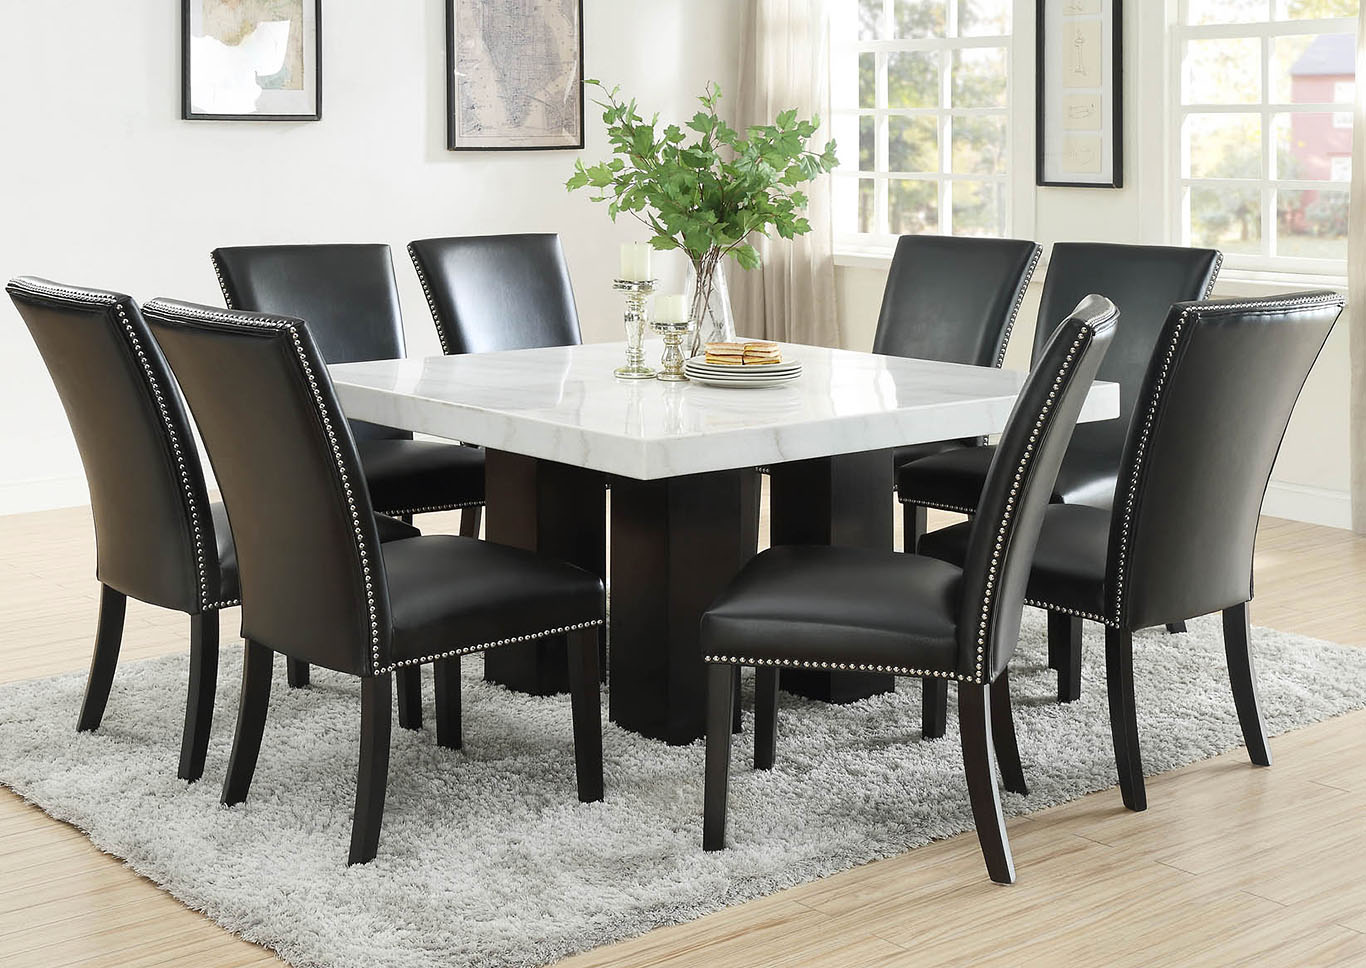 Camila Brown Square Marble Top Dining Set W 8 Chairs Black Pu Ivan Smith